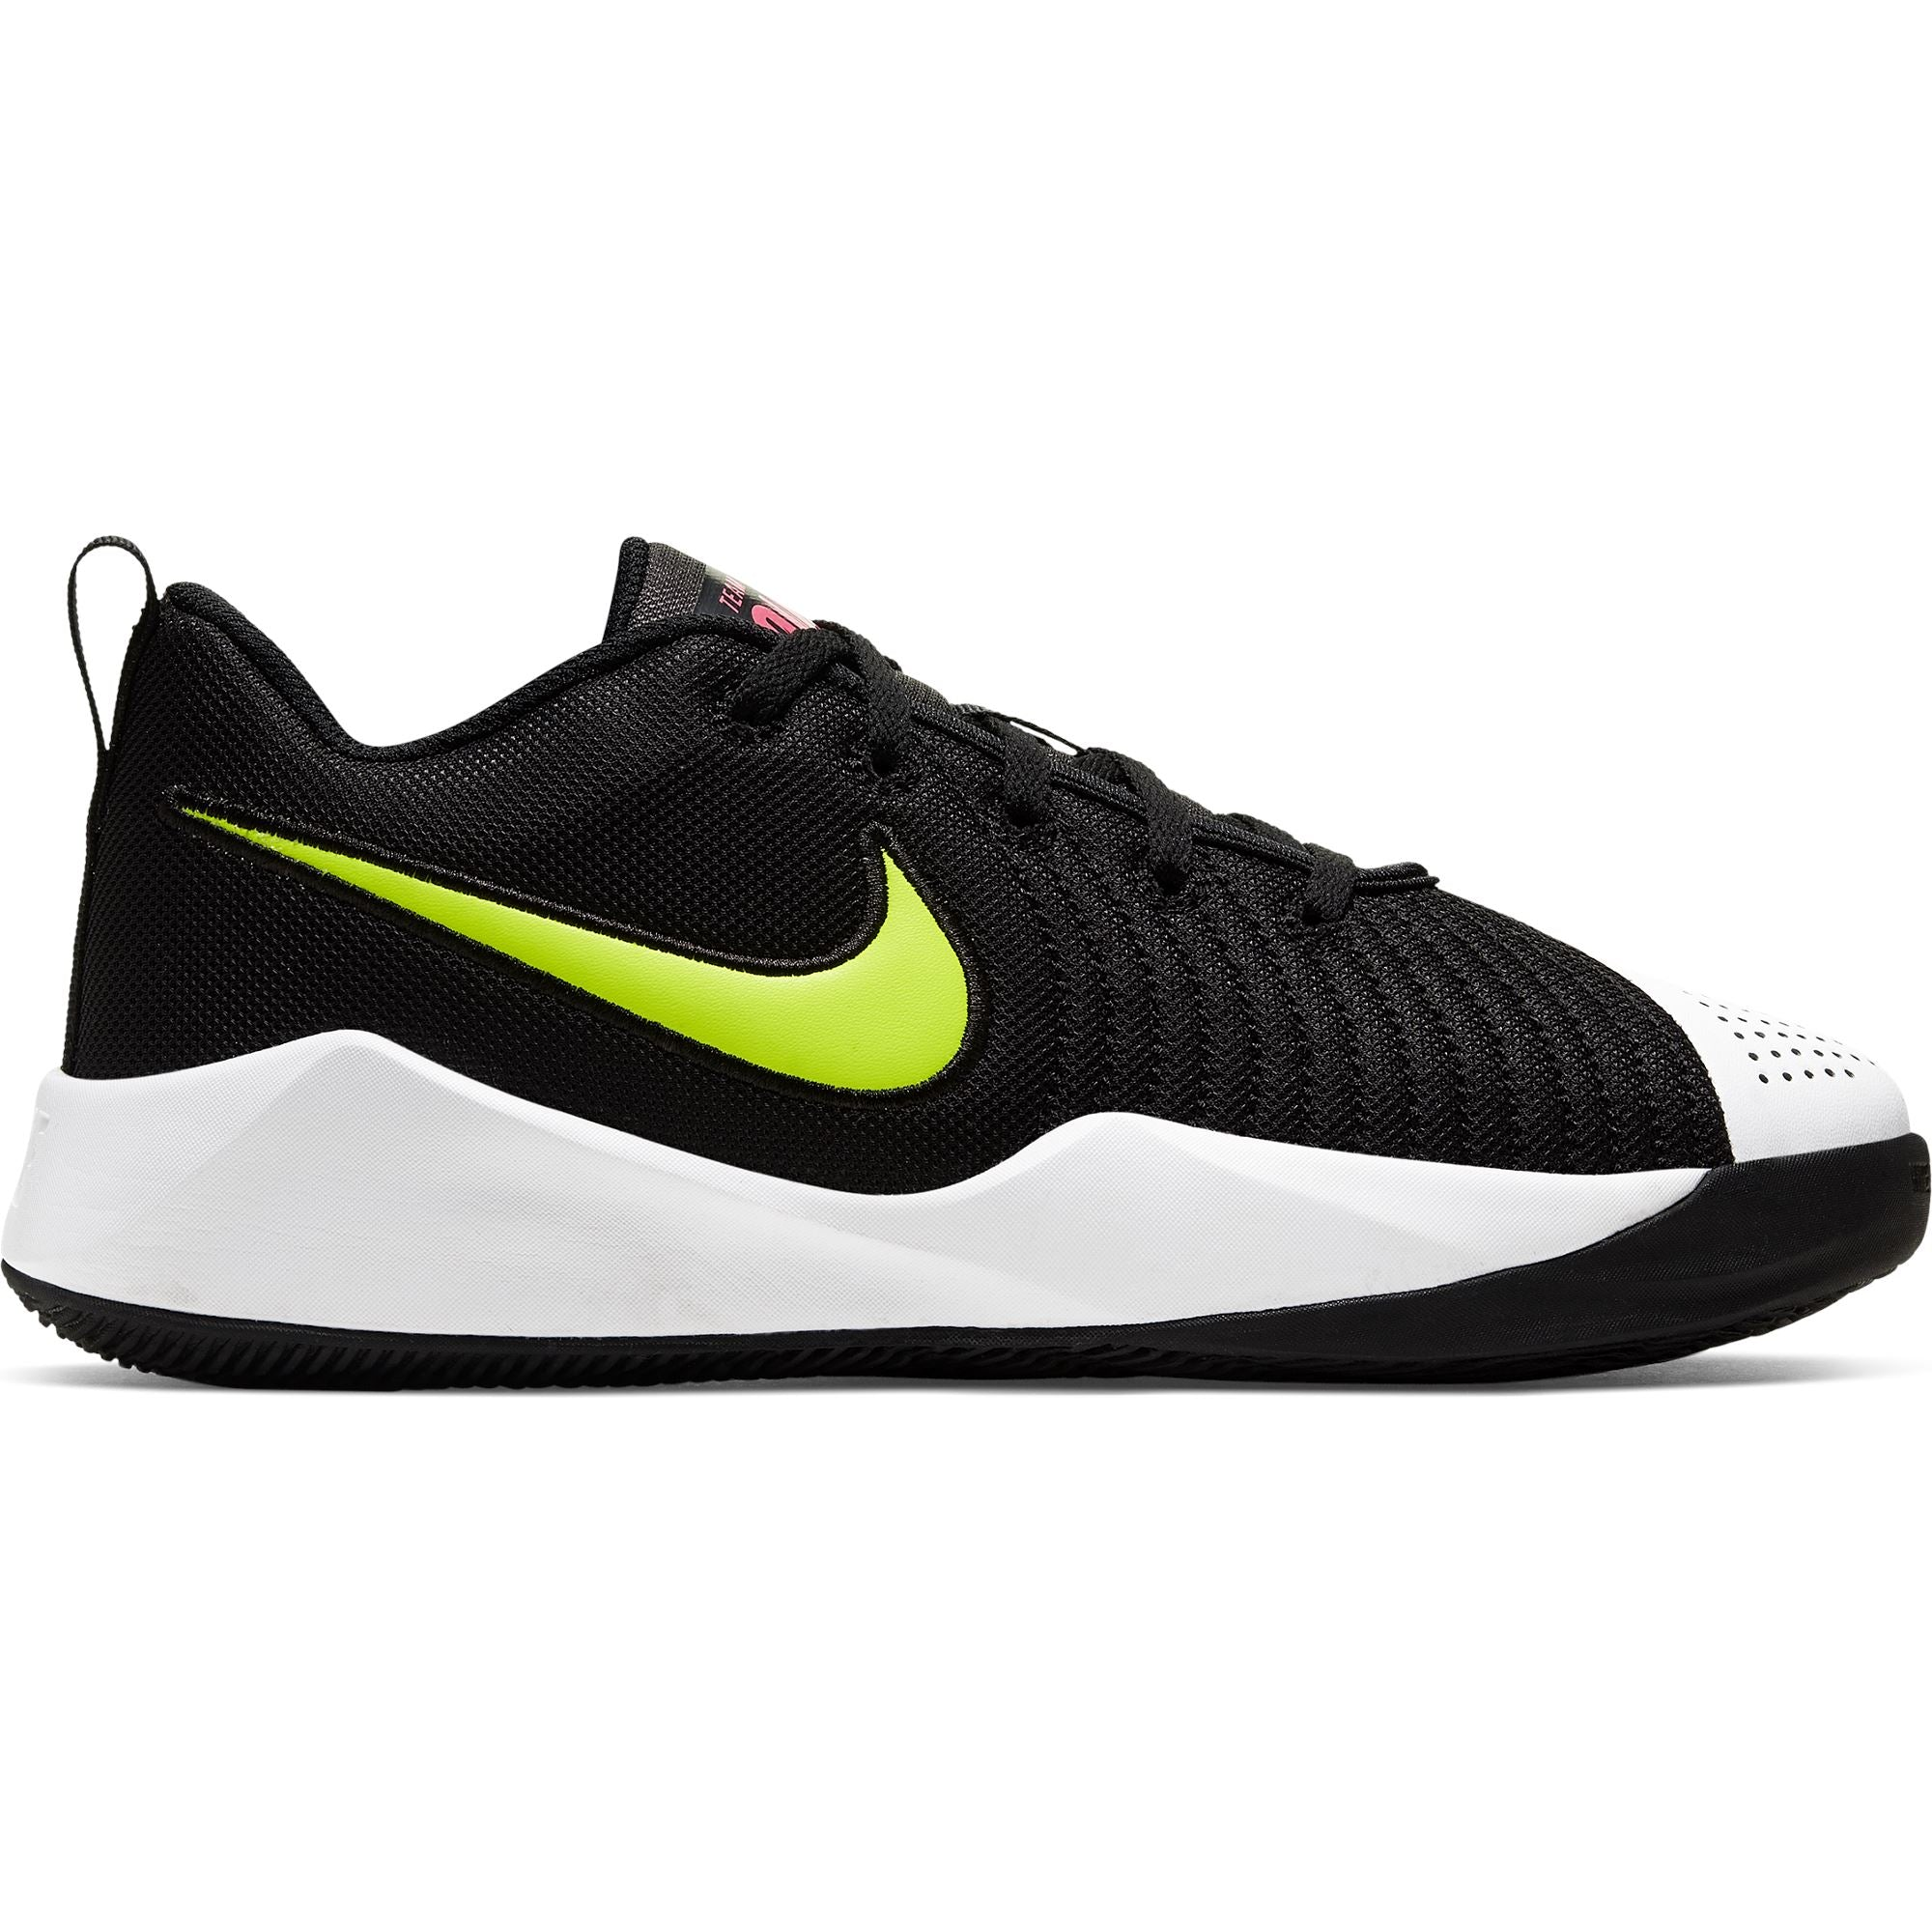 Nike Kids Team Hustle Quick 2 - Black/Volt/White/Blue Hero SP-Footwear-Kids Nike